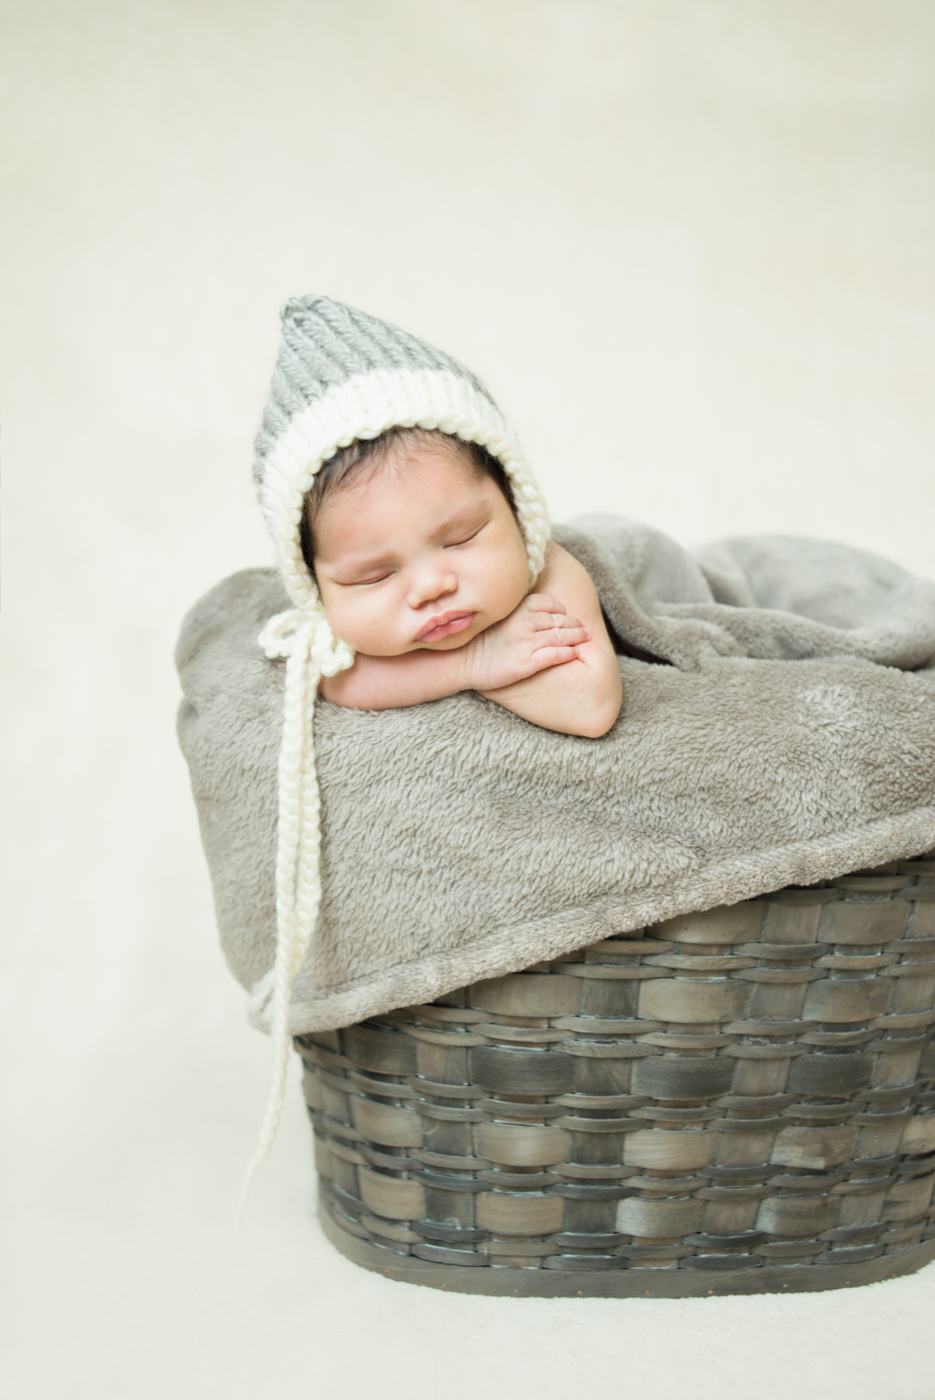 best-newborn-photographer-in-portland-oregon-cream-and-gray-baby-basket-pixie-bonnet-shelley-marie-photo-4